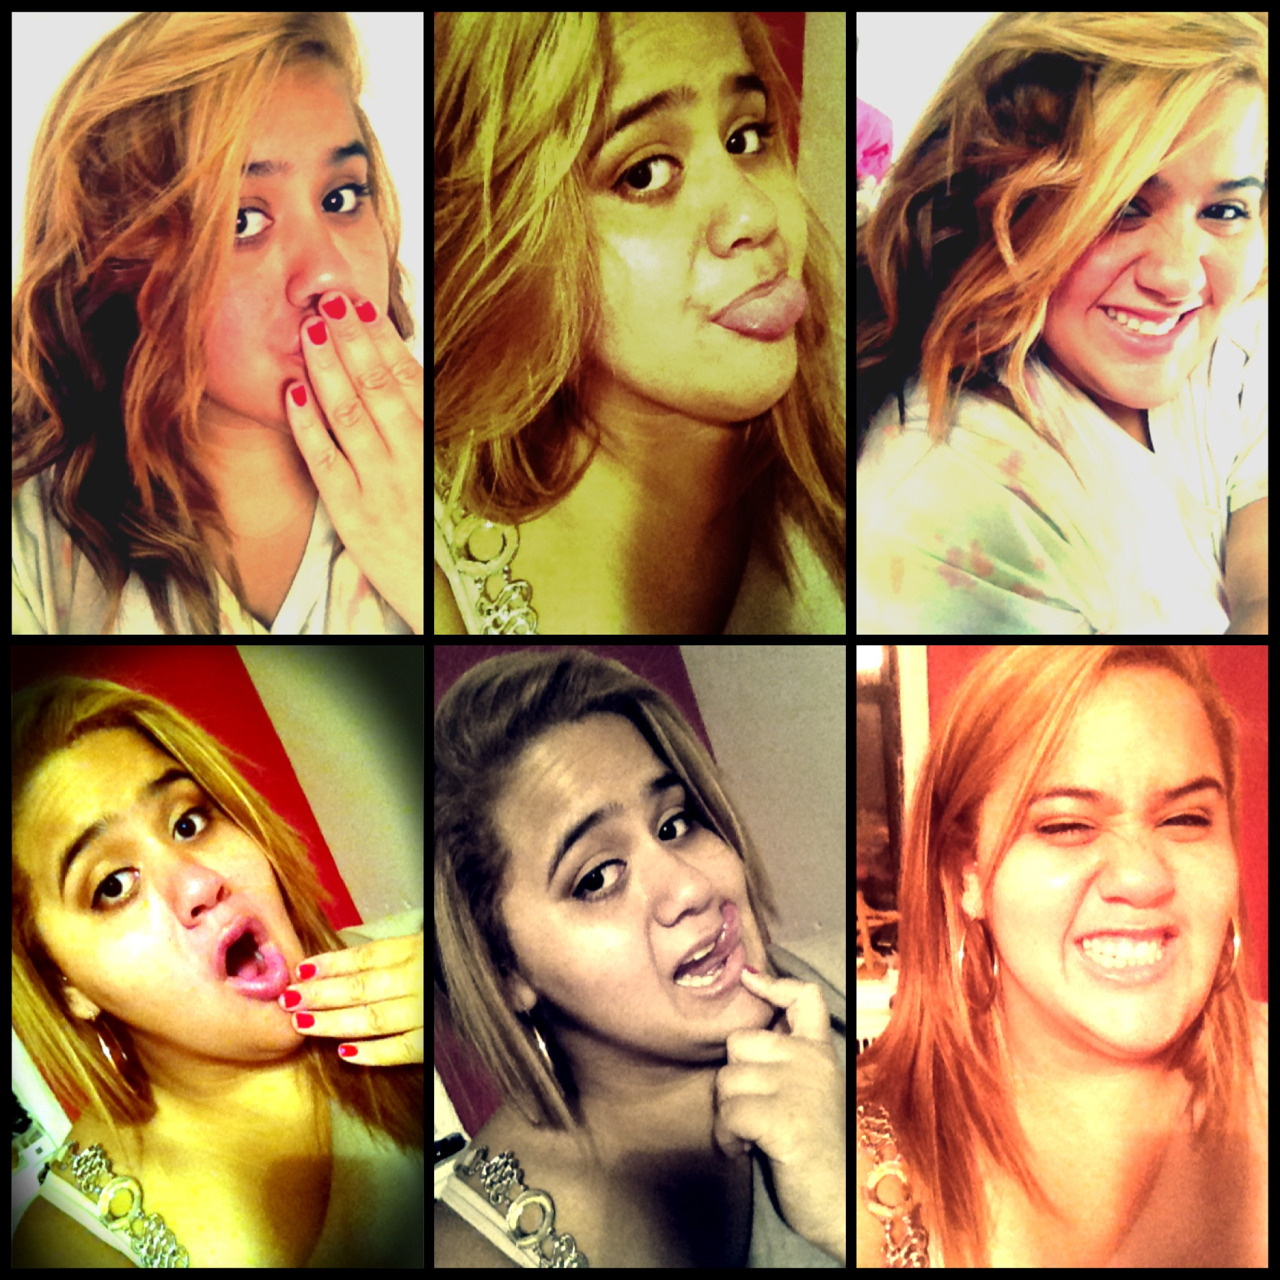 Being silly :P No matter what just smile because God never puts you through something you can't handle ❤